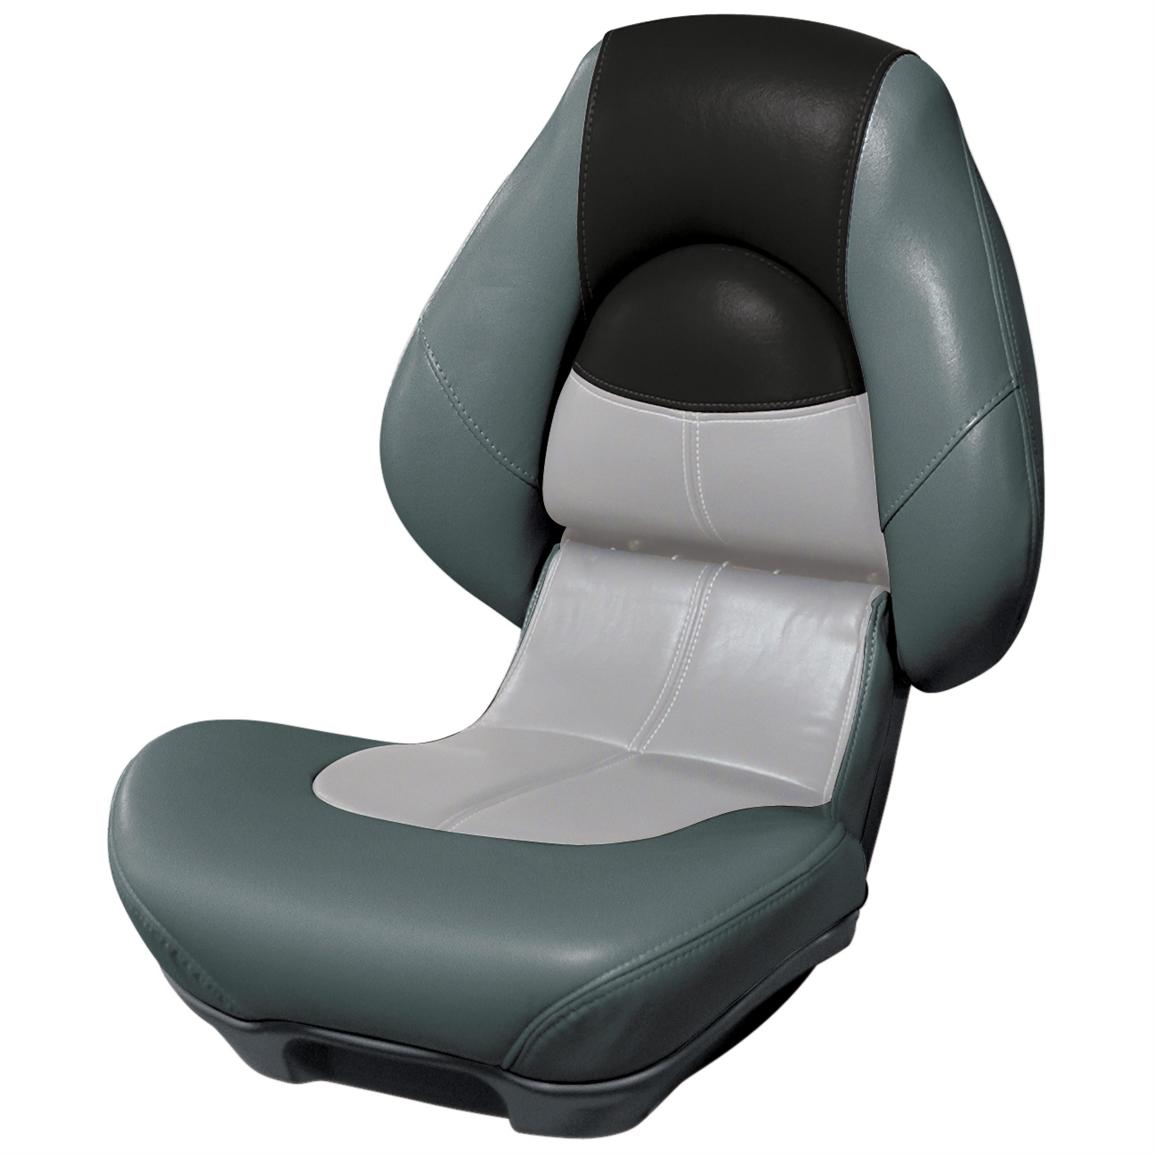 Wise® Blast-Off™ Series Centric 2 Folding Boat Seat, Charcoal / Grey / Black